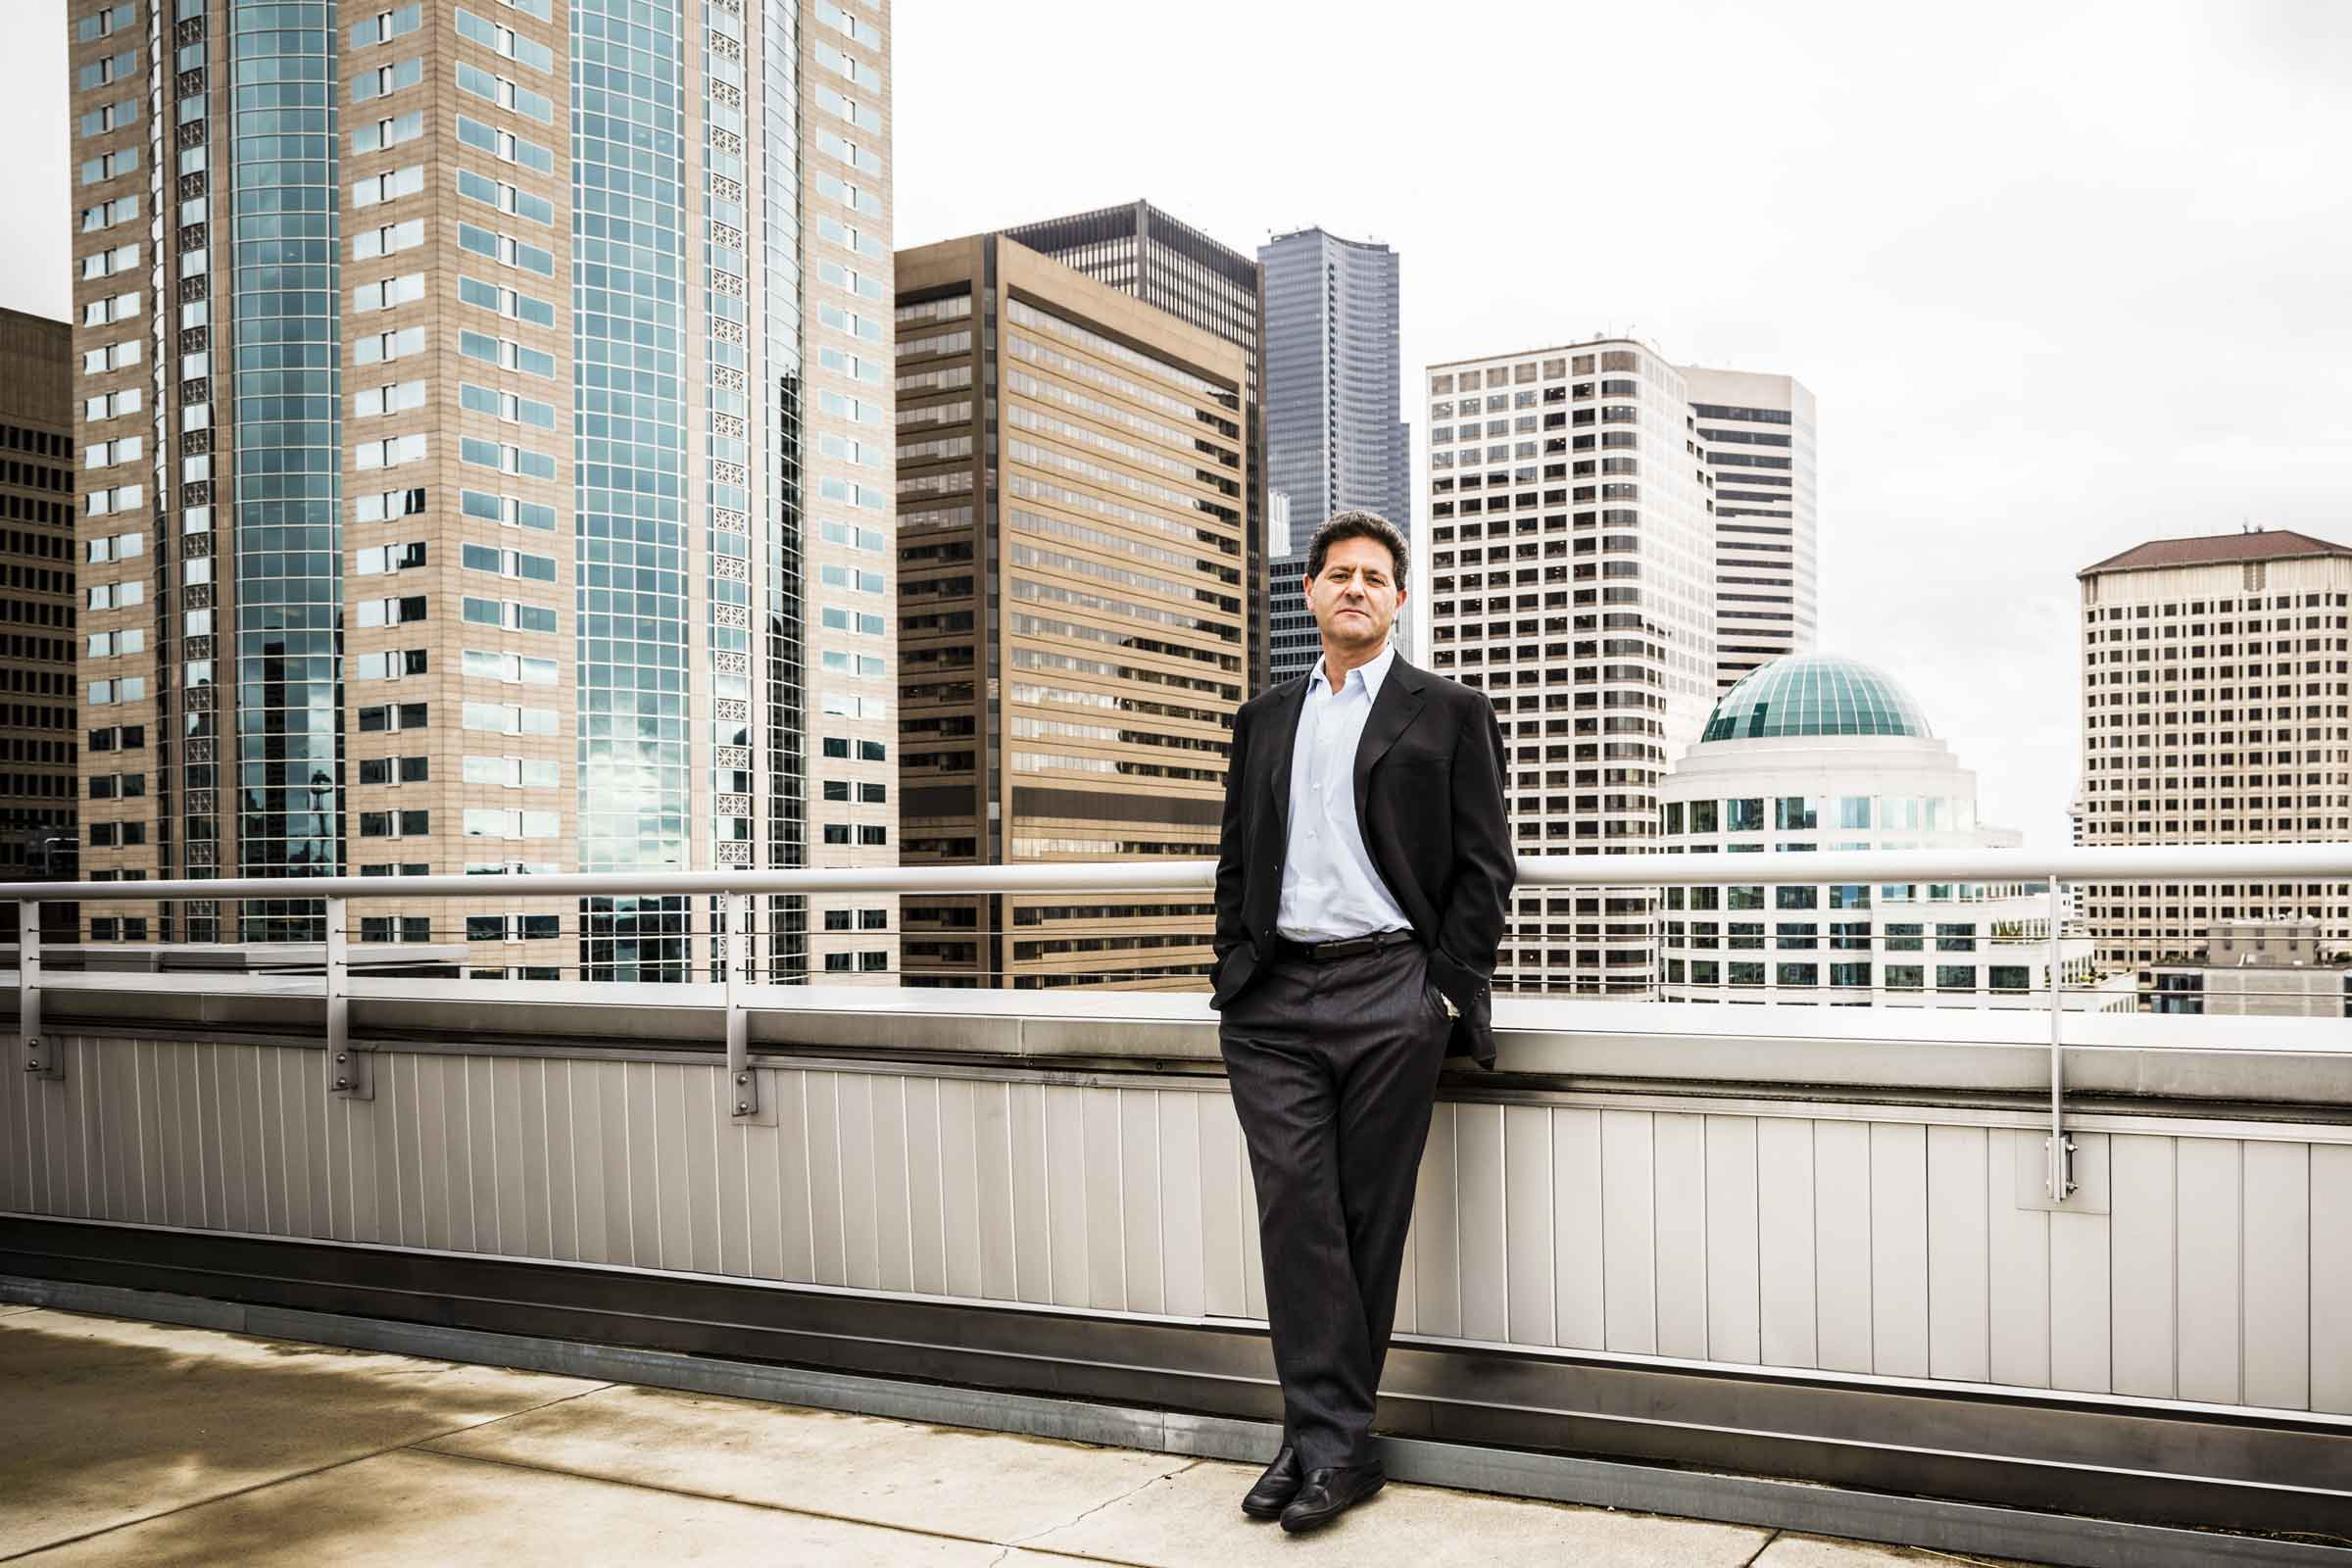 Nick Hanauer, Partner, Second Avenue Partners. Photographed in Seattle by Brian Smale for Der Spiegel Magazine.